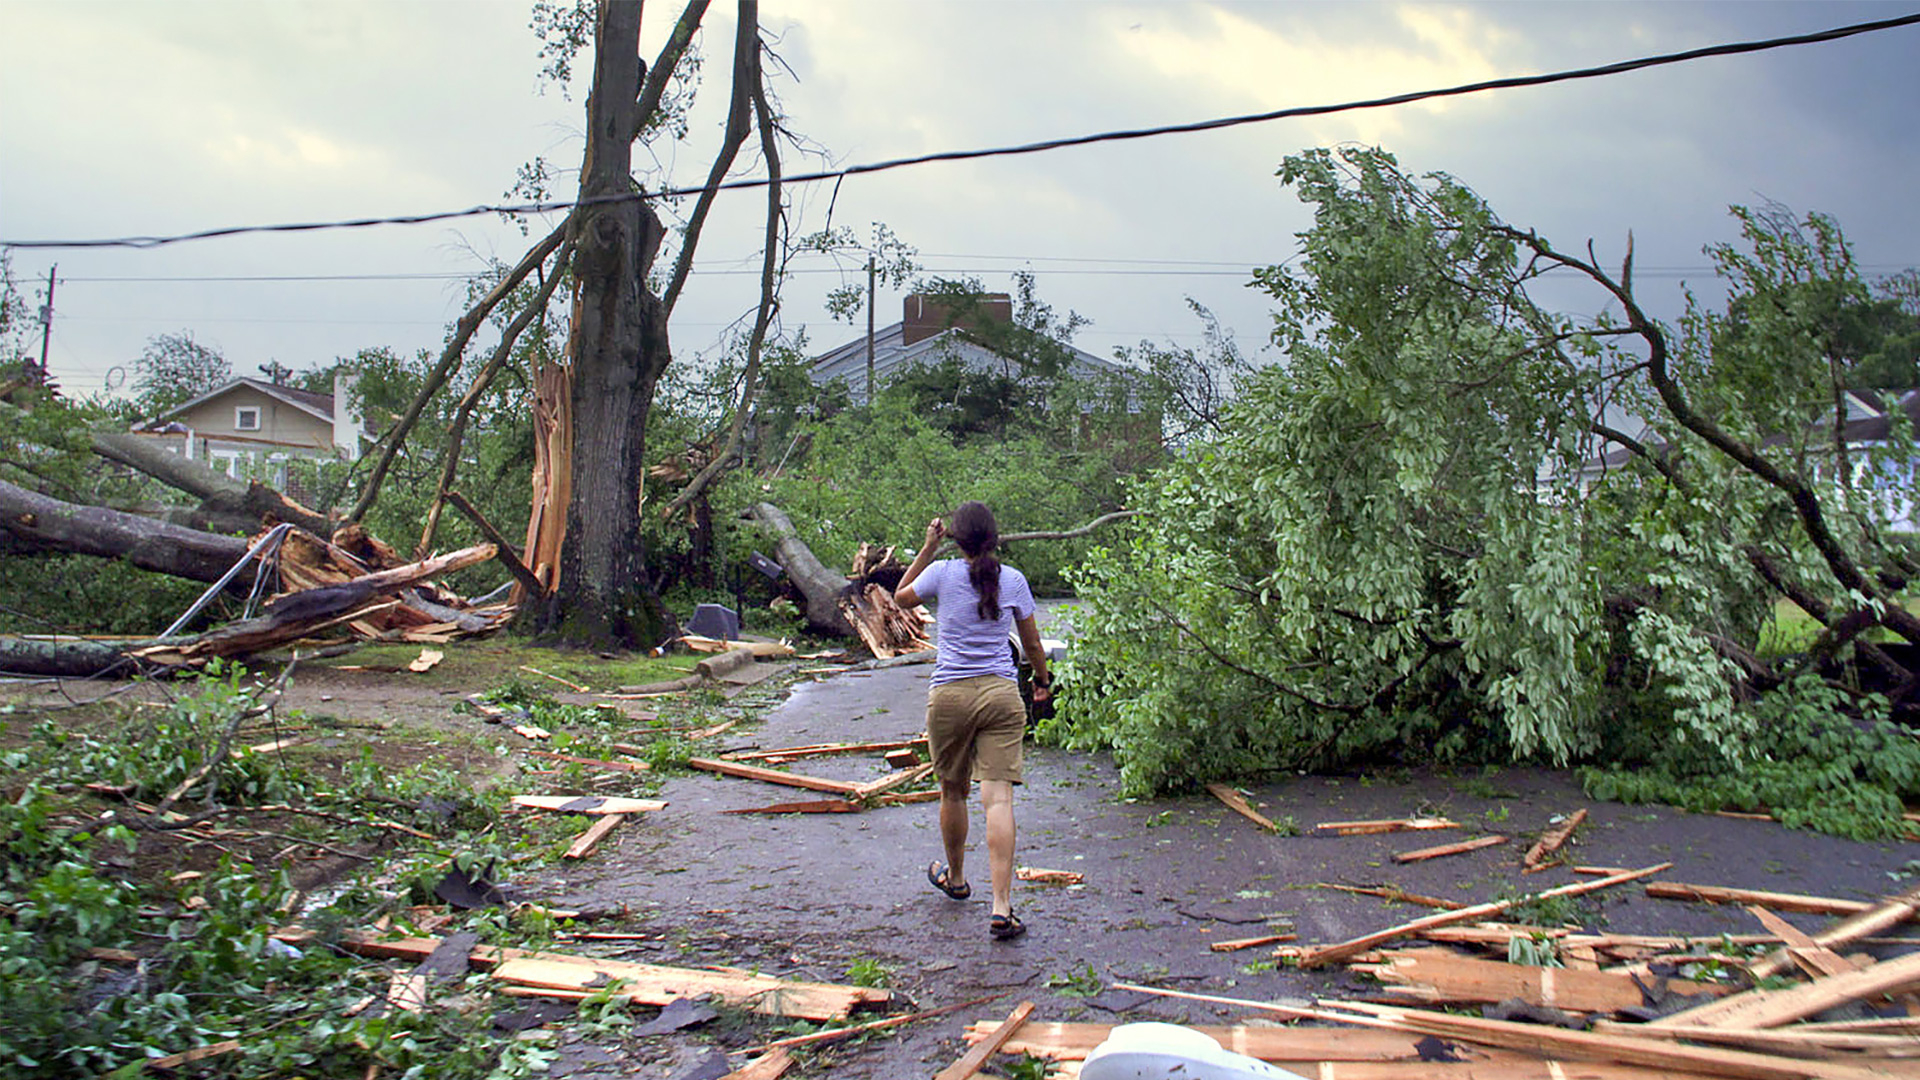 Woman walks through downed trees and debris after a tornado.